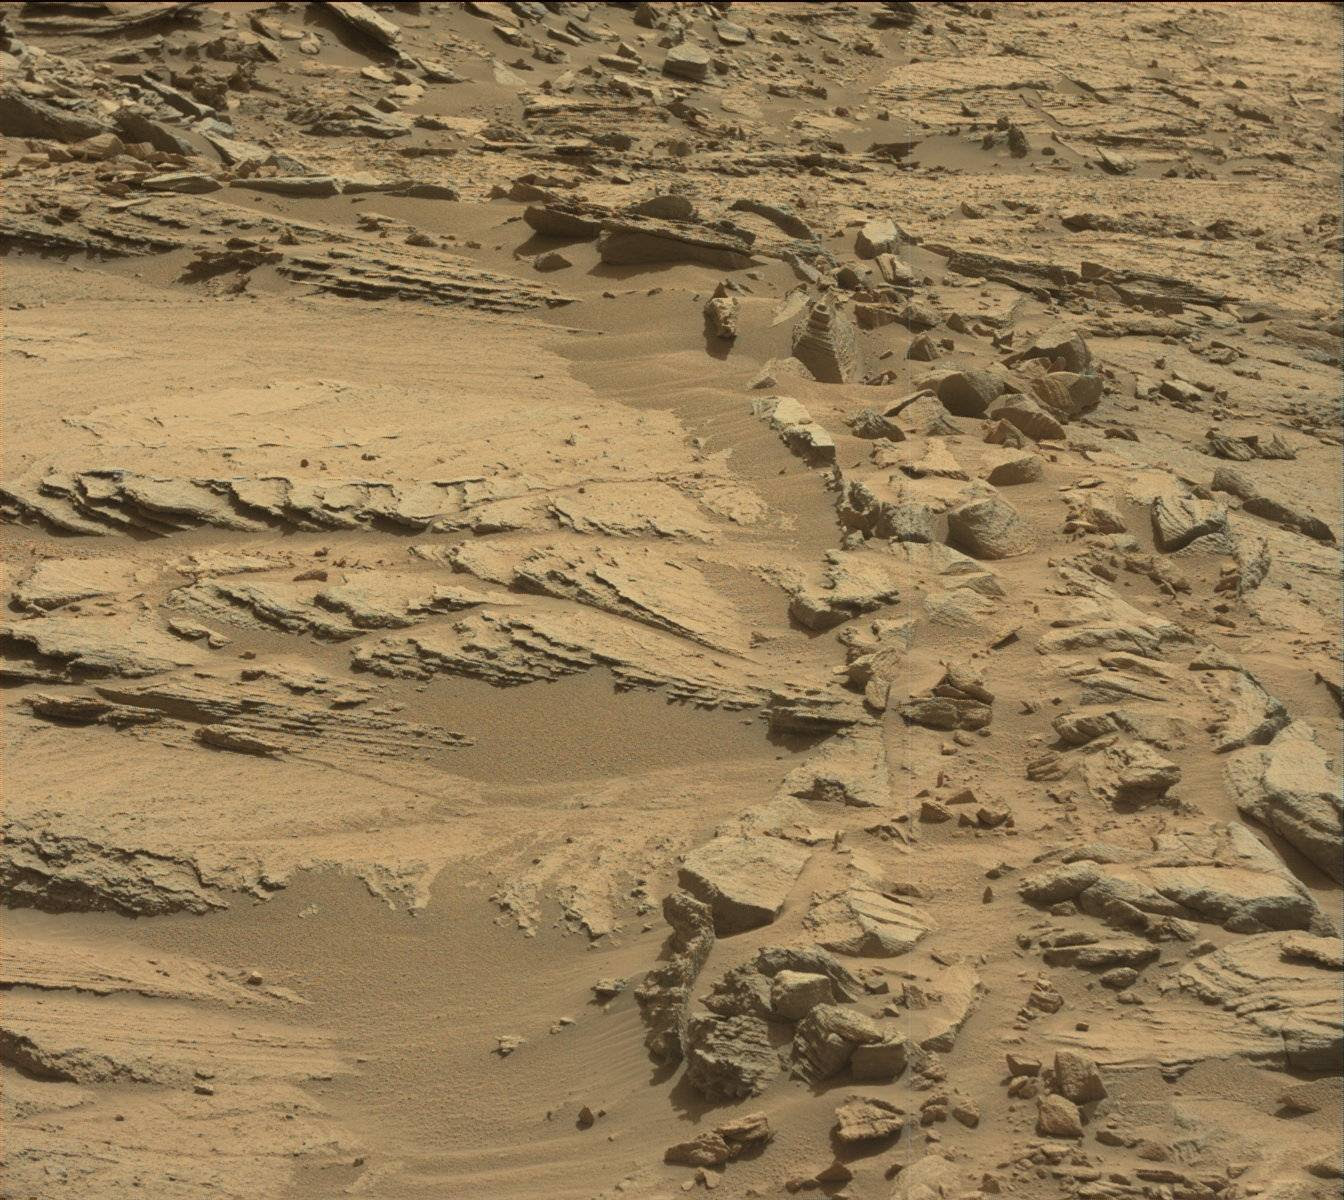 http://mars.jpl.nasa.gov/msl-raw-images/msss/01373/mcam/1373ML0067250050601226E01_DXXX.jpg